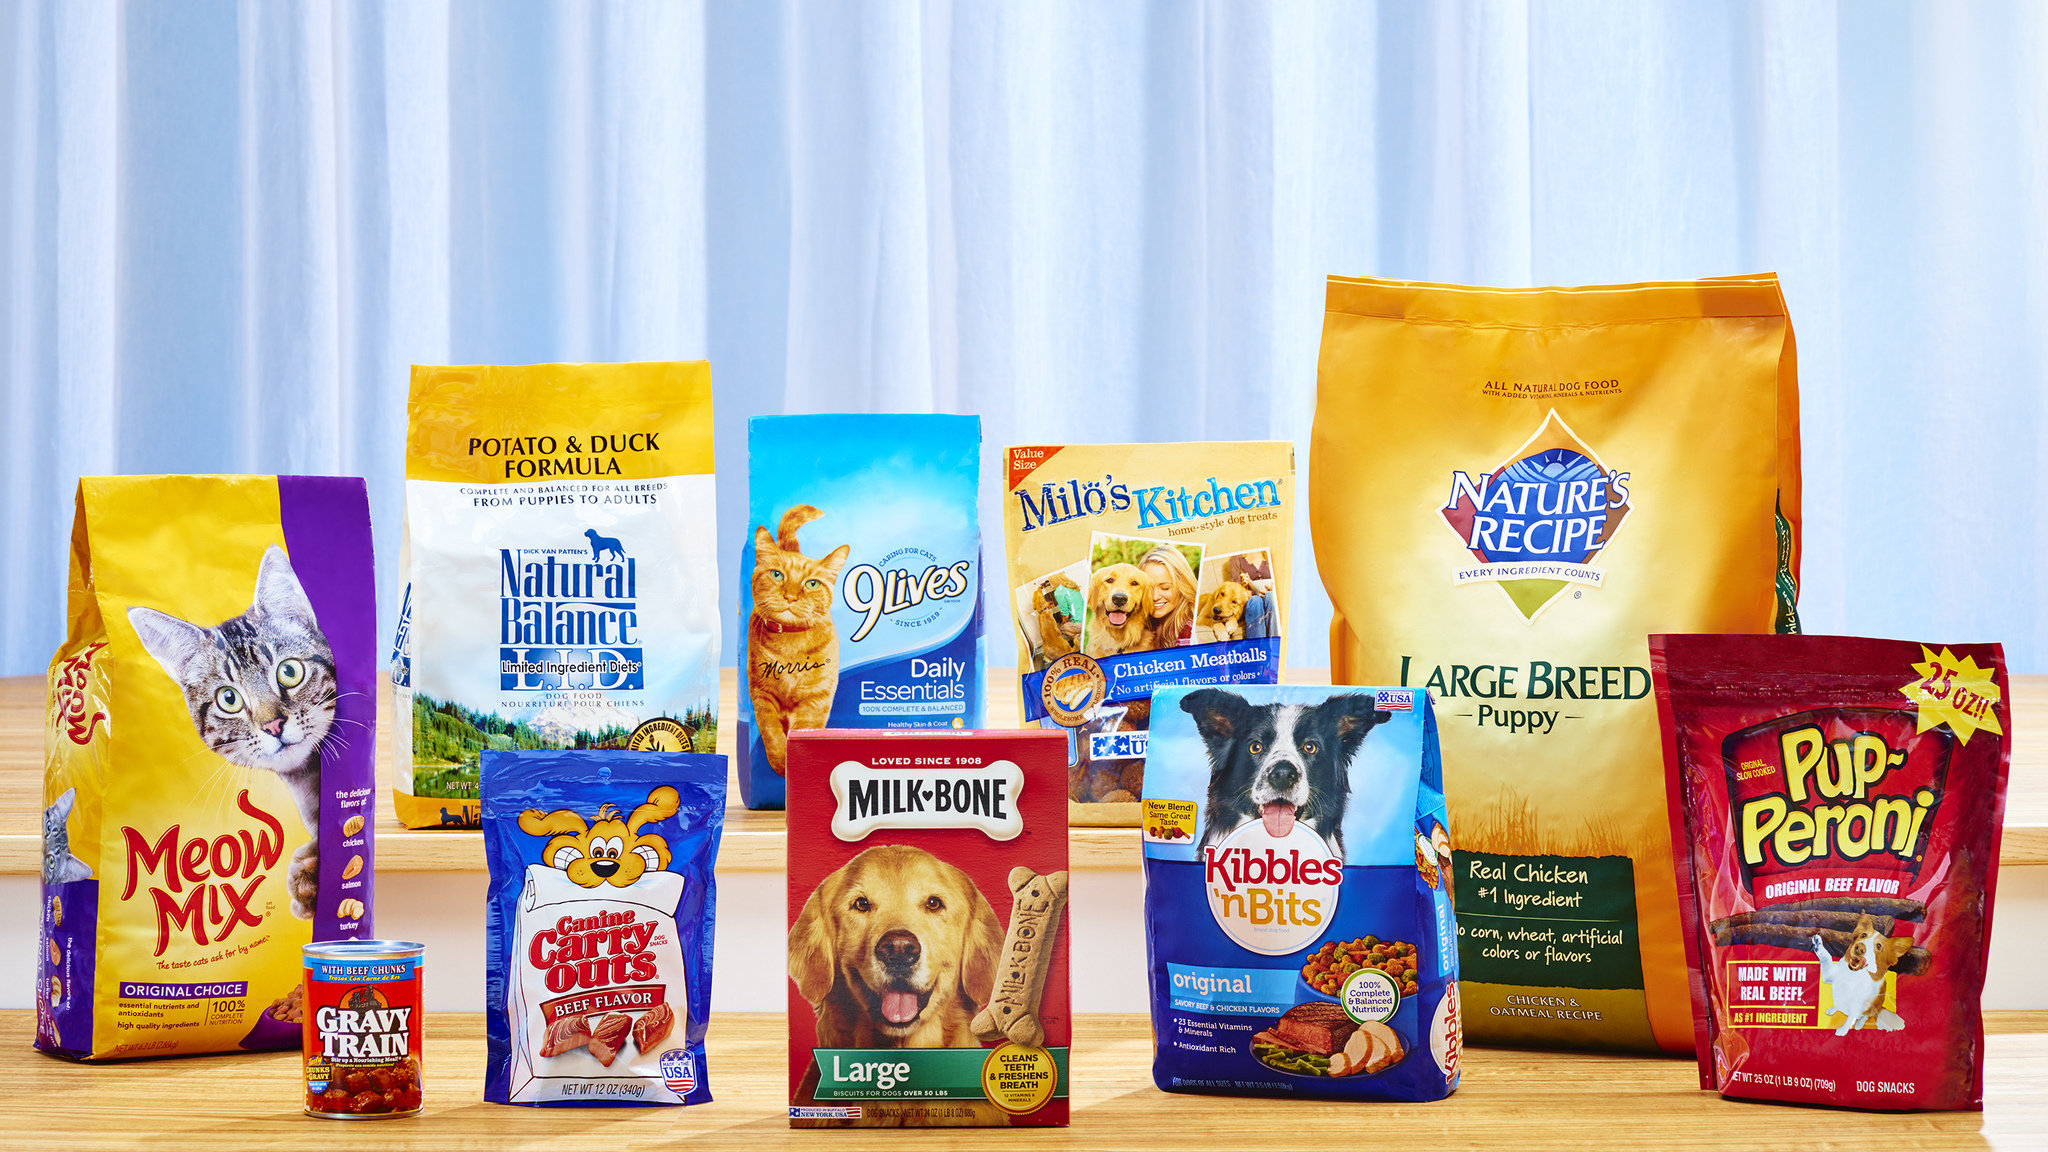 Big heart pet brands pack of pets in addition to its brands big heart pet brand also owns traditionally produced and distributed private labels and utilized 16 co packers and 12 repackers forumfinder Gallery